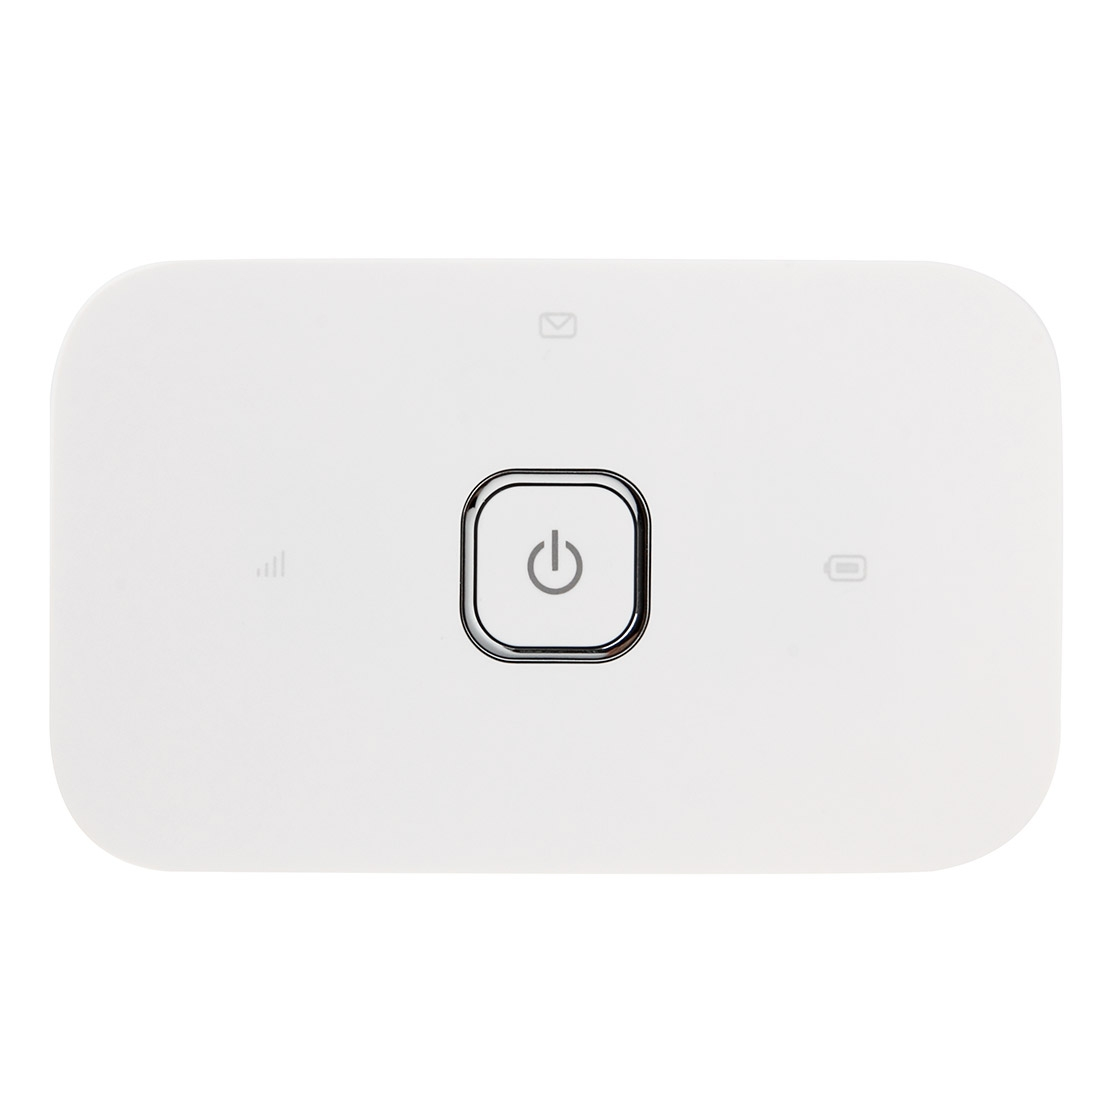 Huawei Vodafone Mobile WiFi Hotspot R216 Pocket WiFi 4G 150Mbps